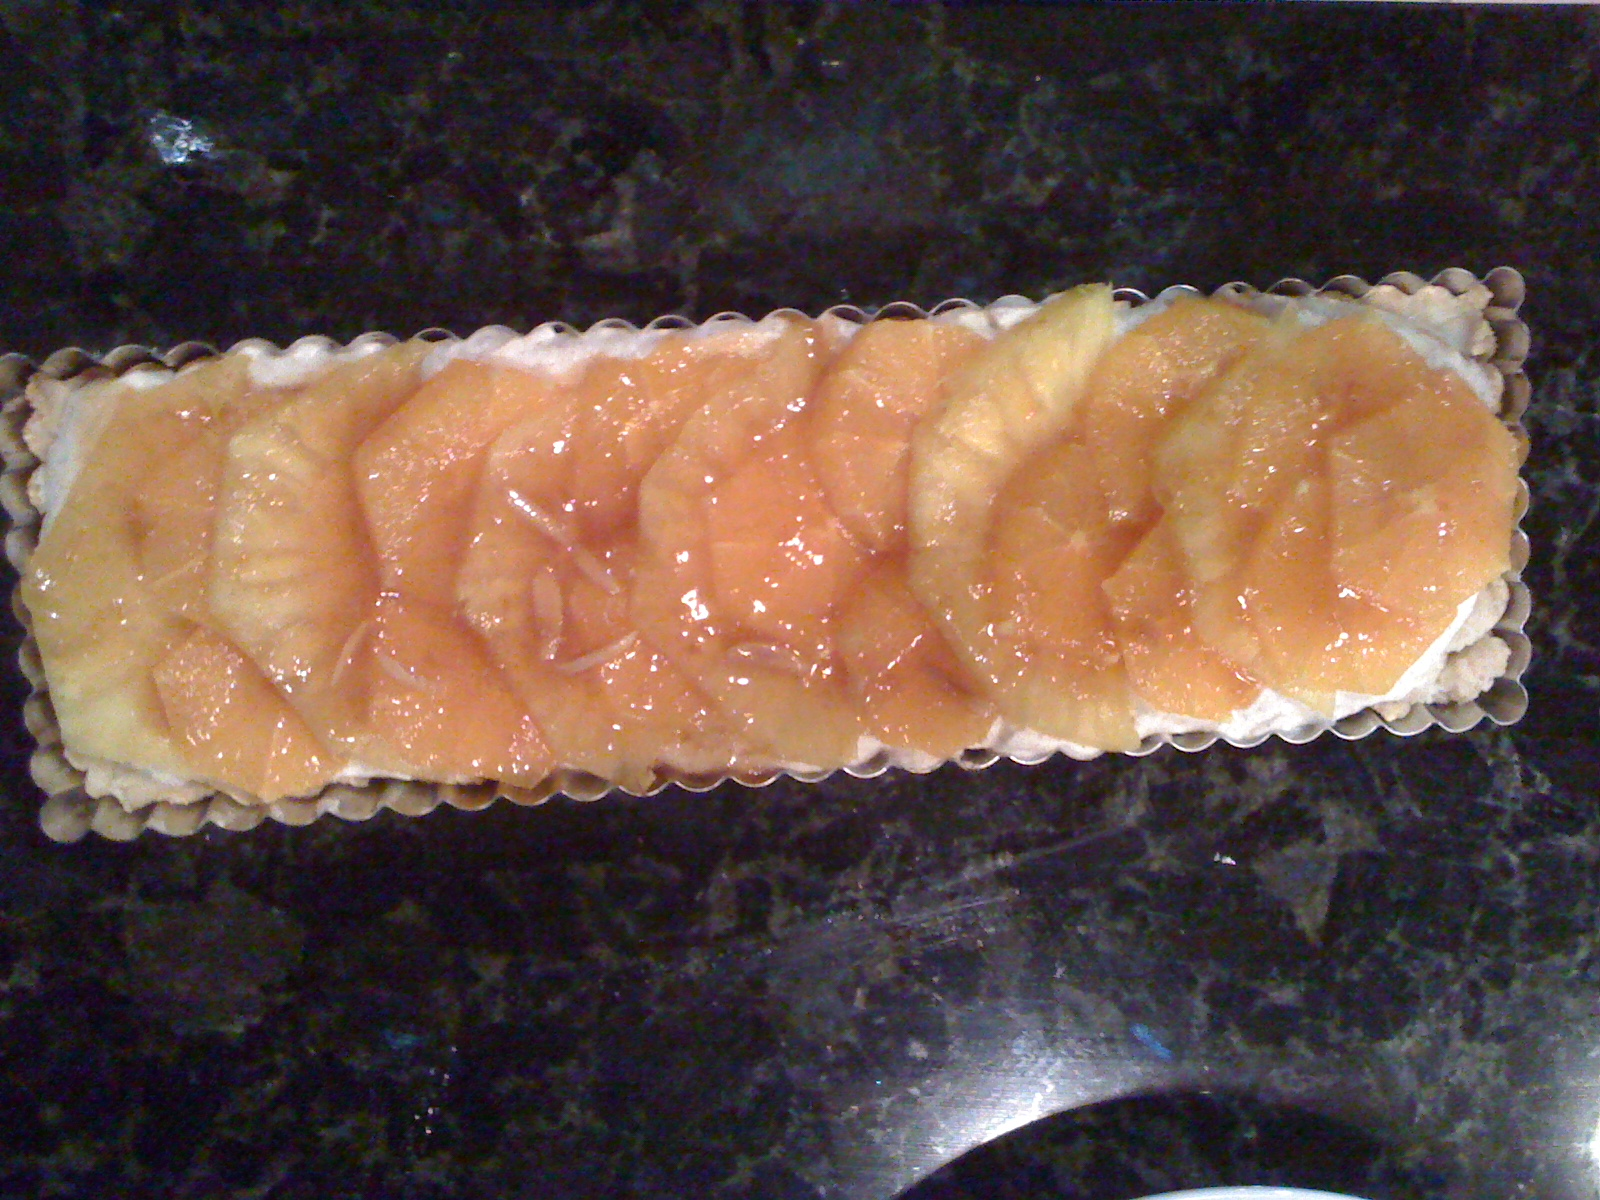 Italian Sweet Cream Citrus Tart